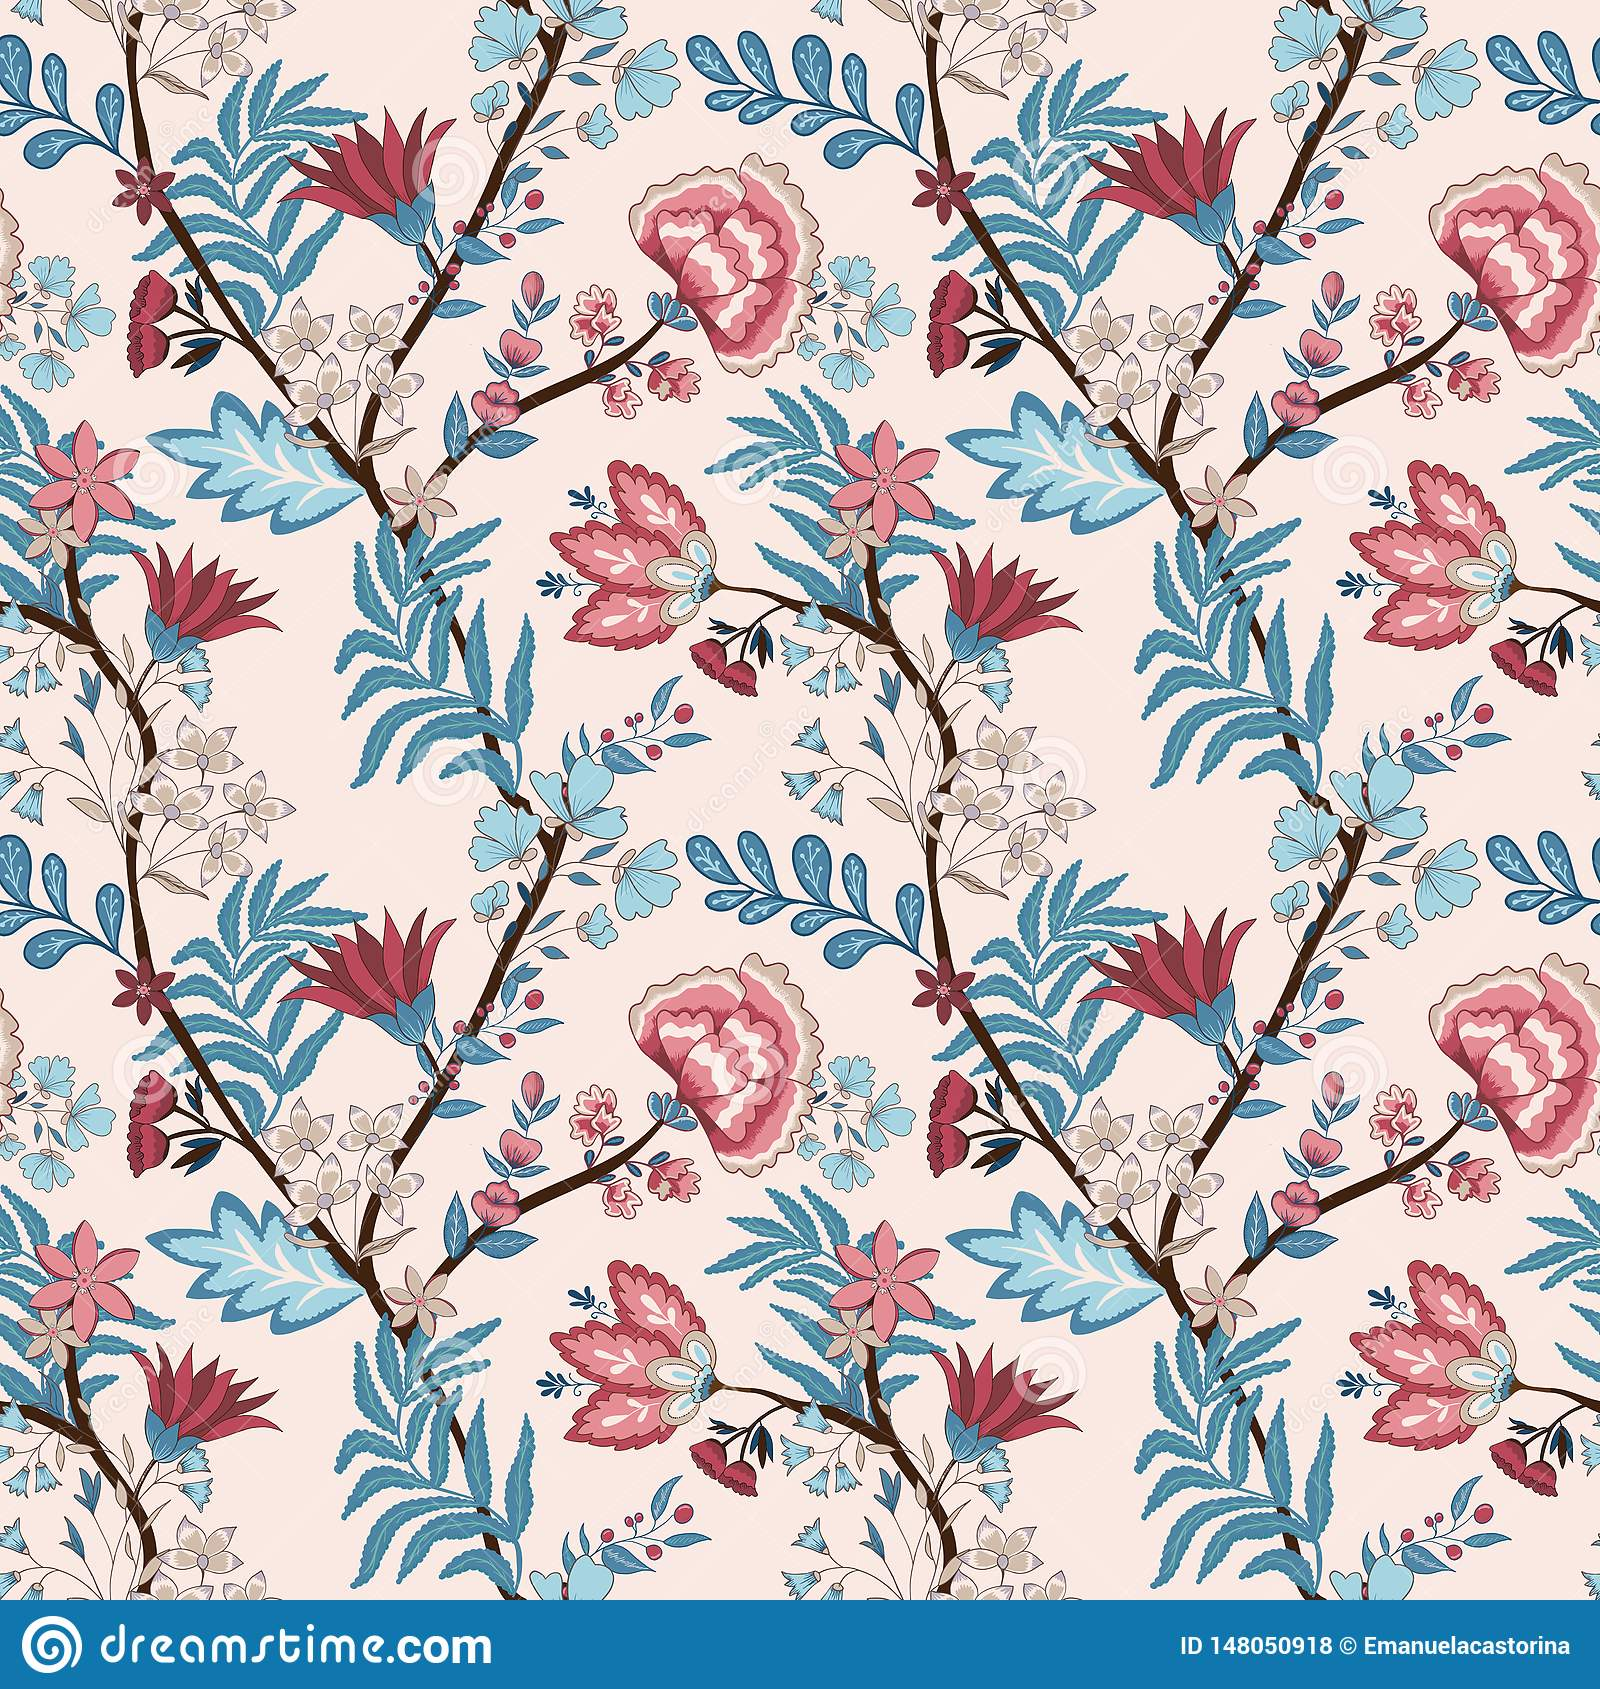 Vector illustration of a seamless floral pattern. Indian and oriental style